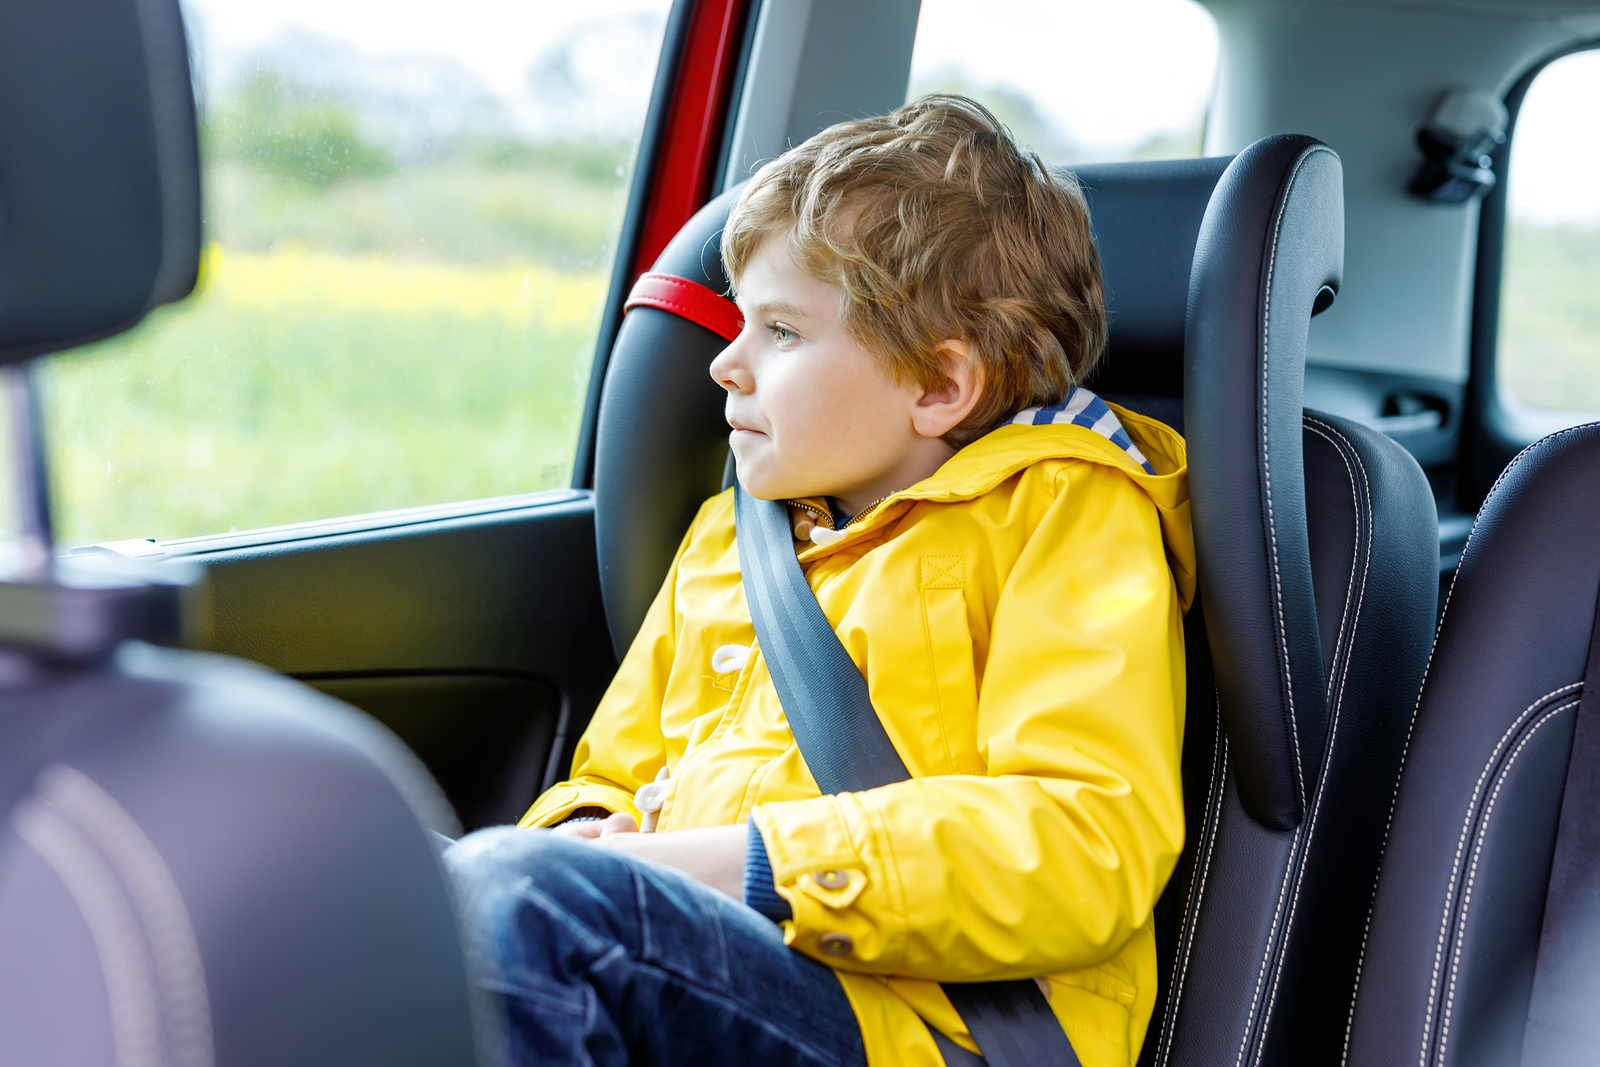 The American Academy of Pediatrics recently revised and issued new car seat guidelines.